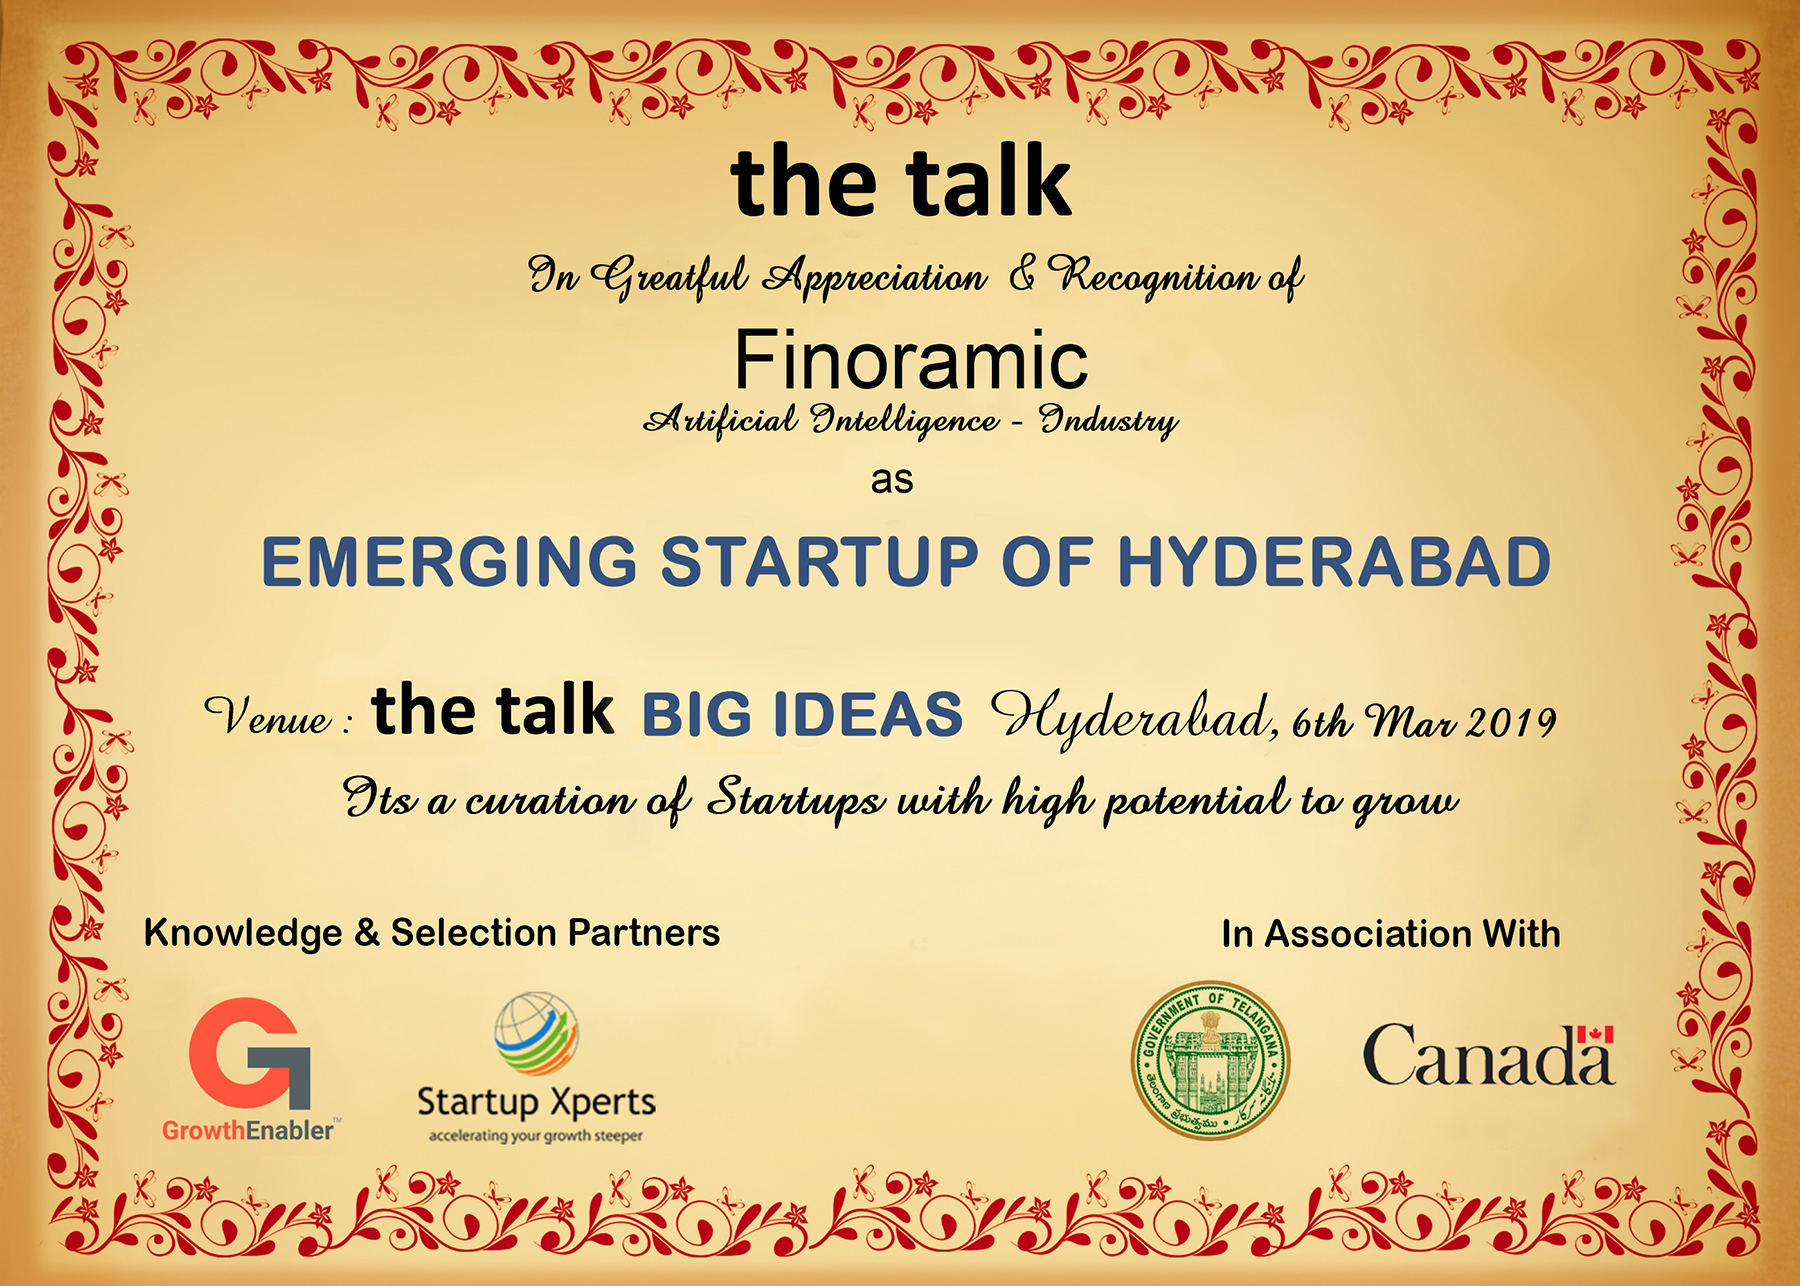 the talk - Big Ideas To Scale SME's And Startups The Westin, Hyderabad - 06th May 2019